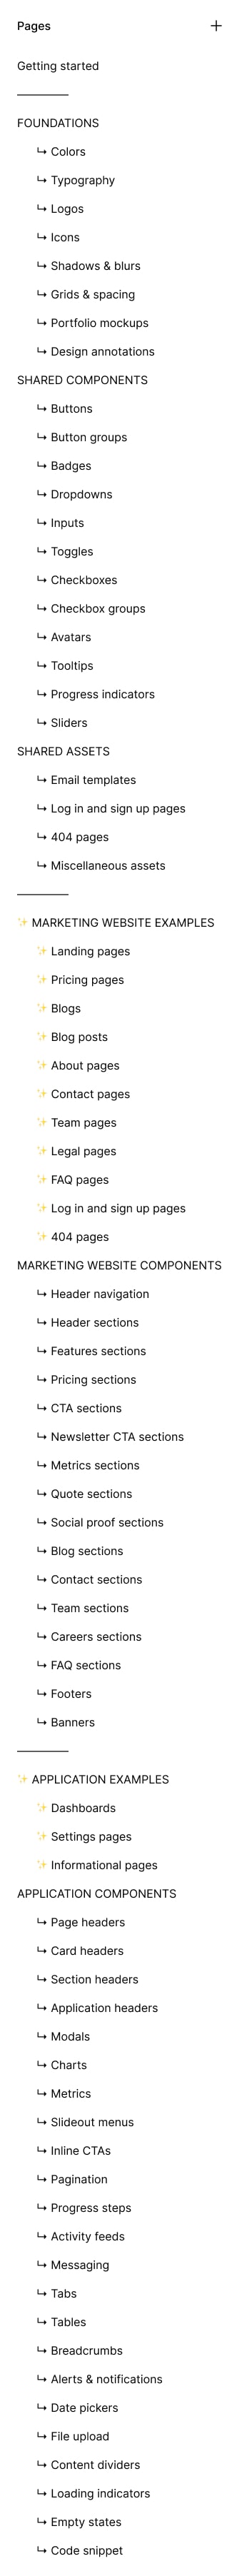 Figma pages list